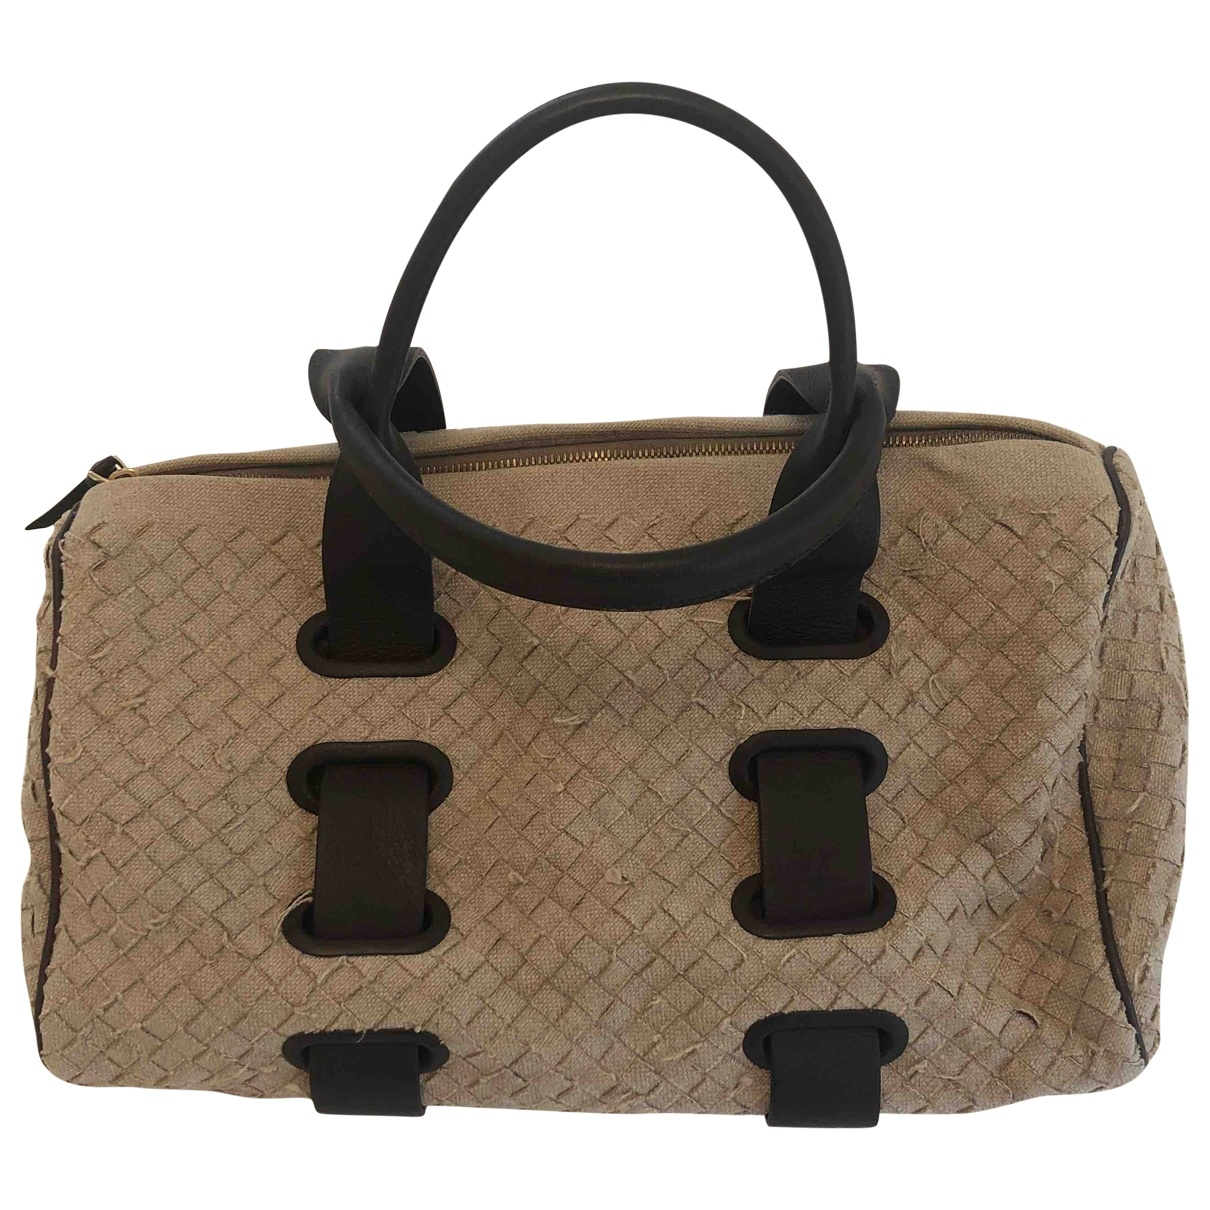 Bottega Veneta \N Beige Cloth handbag for Women \N